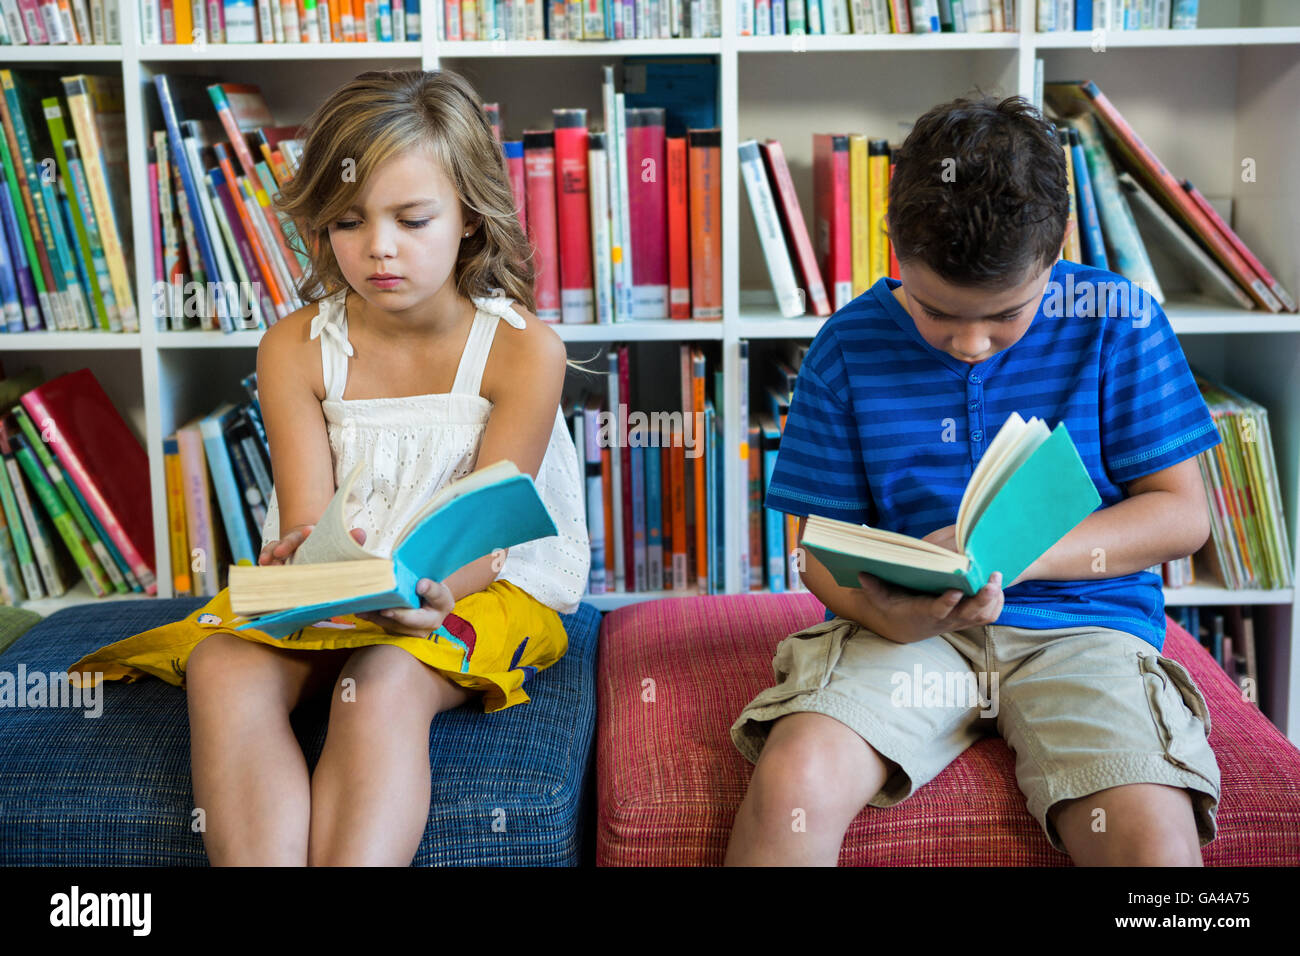 Elementary students reading books in school library - Stock Image